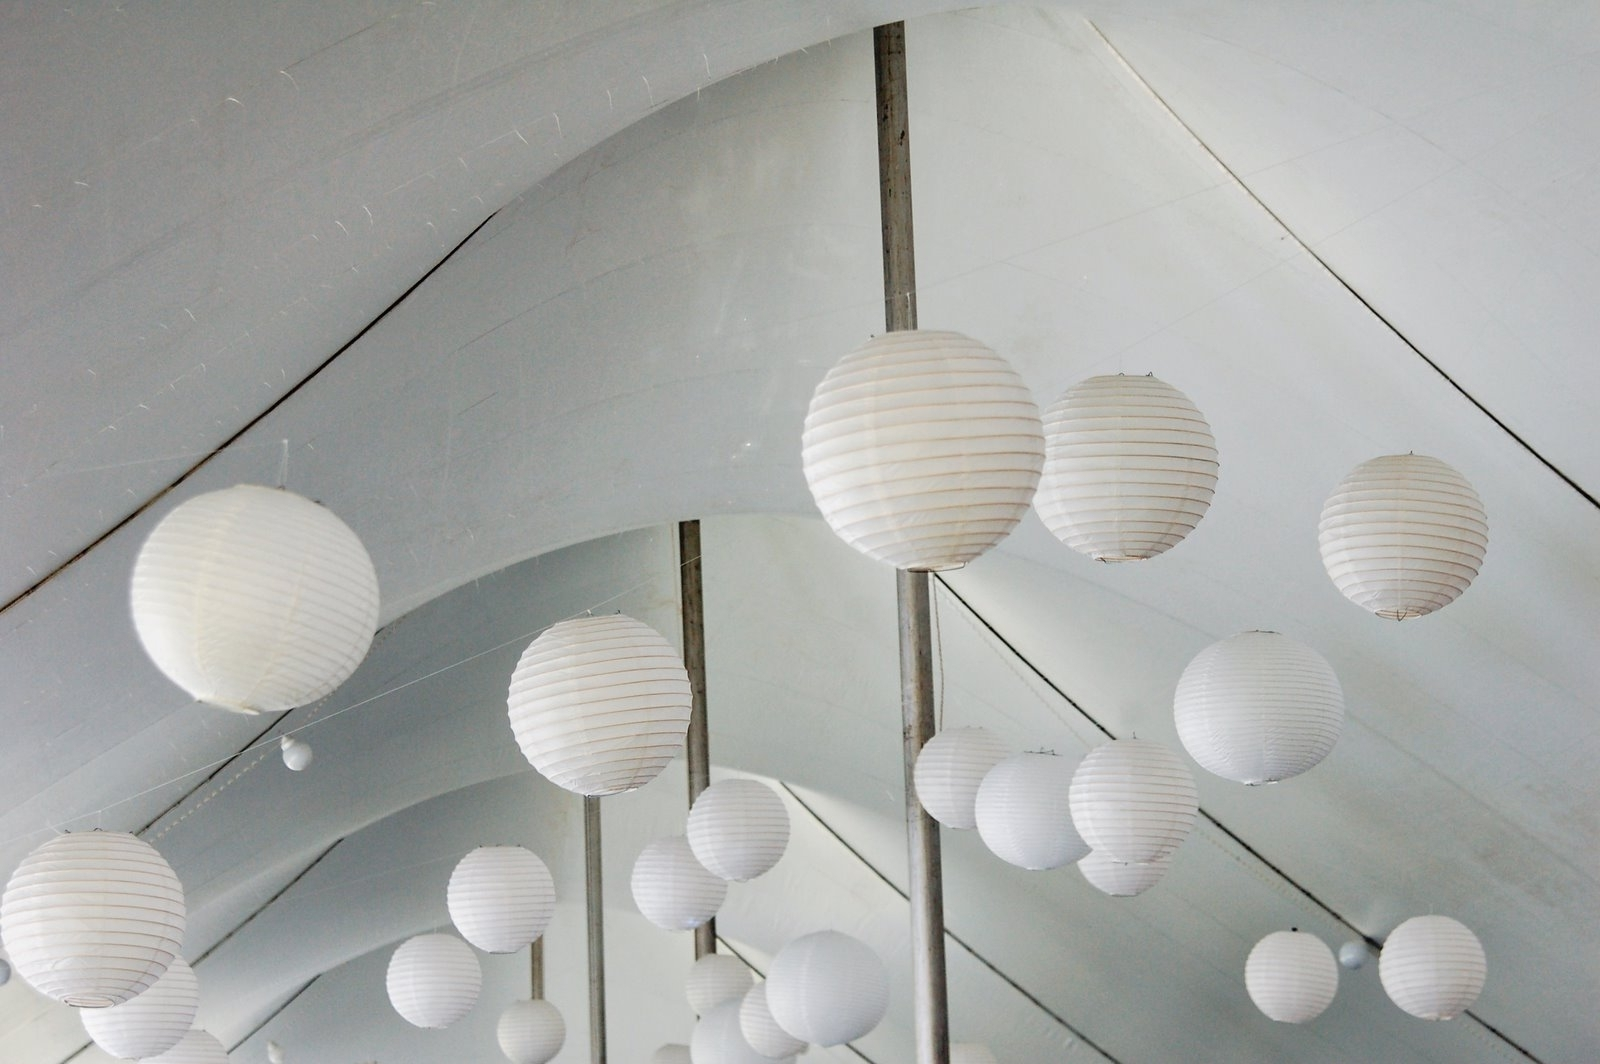 Newest Outdoor Hanging Lanterns For Wedding In Tents, And Lanterns, And Layouts, Oh My (Gallery 20 of 20)